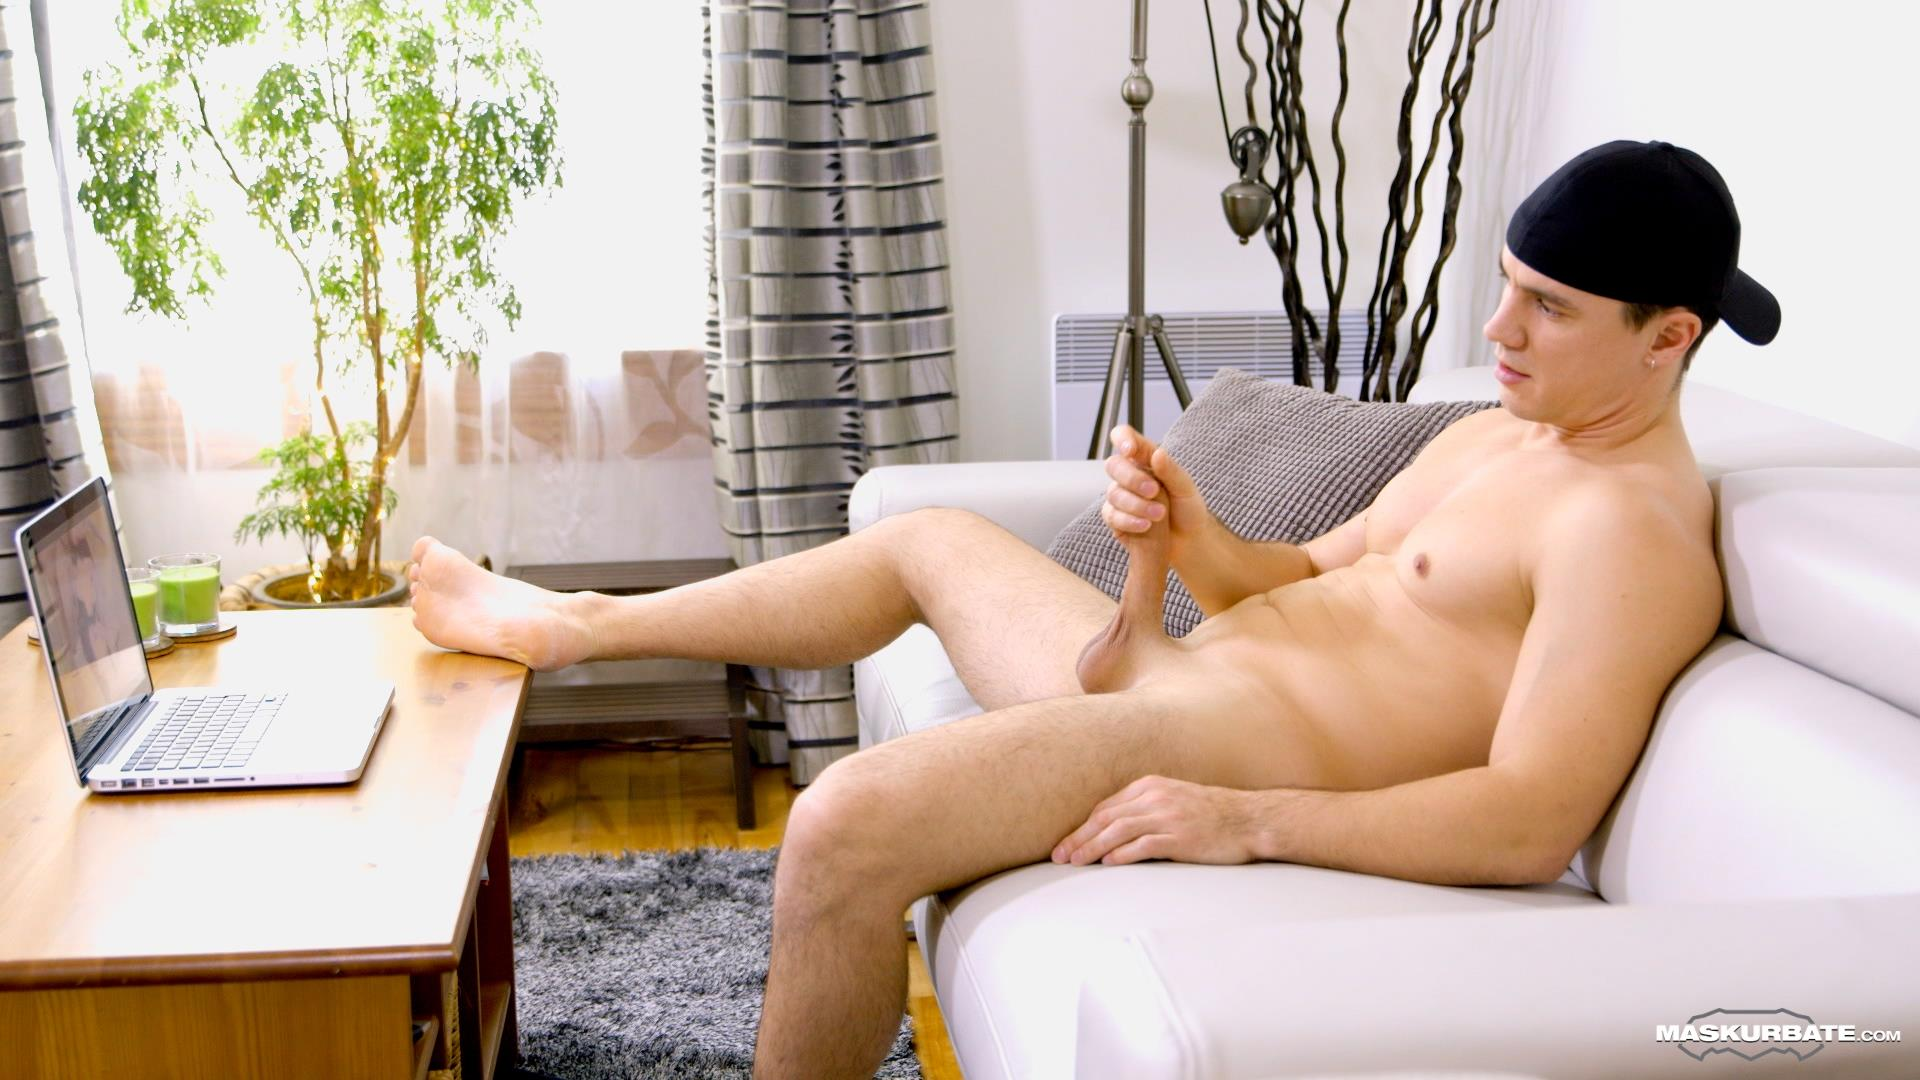 Maskurbate-Ricky-Muscl-Jock-Stroking-His-Big-Uncut-Cock-Amateur-Gay-Porn-11 Smooth Muscle Jock Stroking His Big Uncut Cock